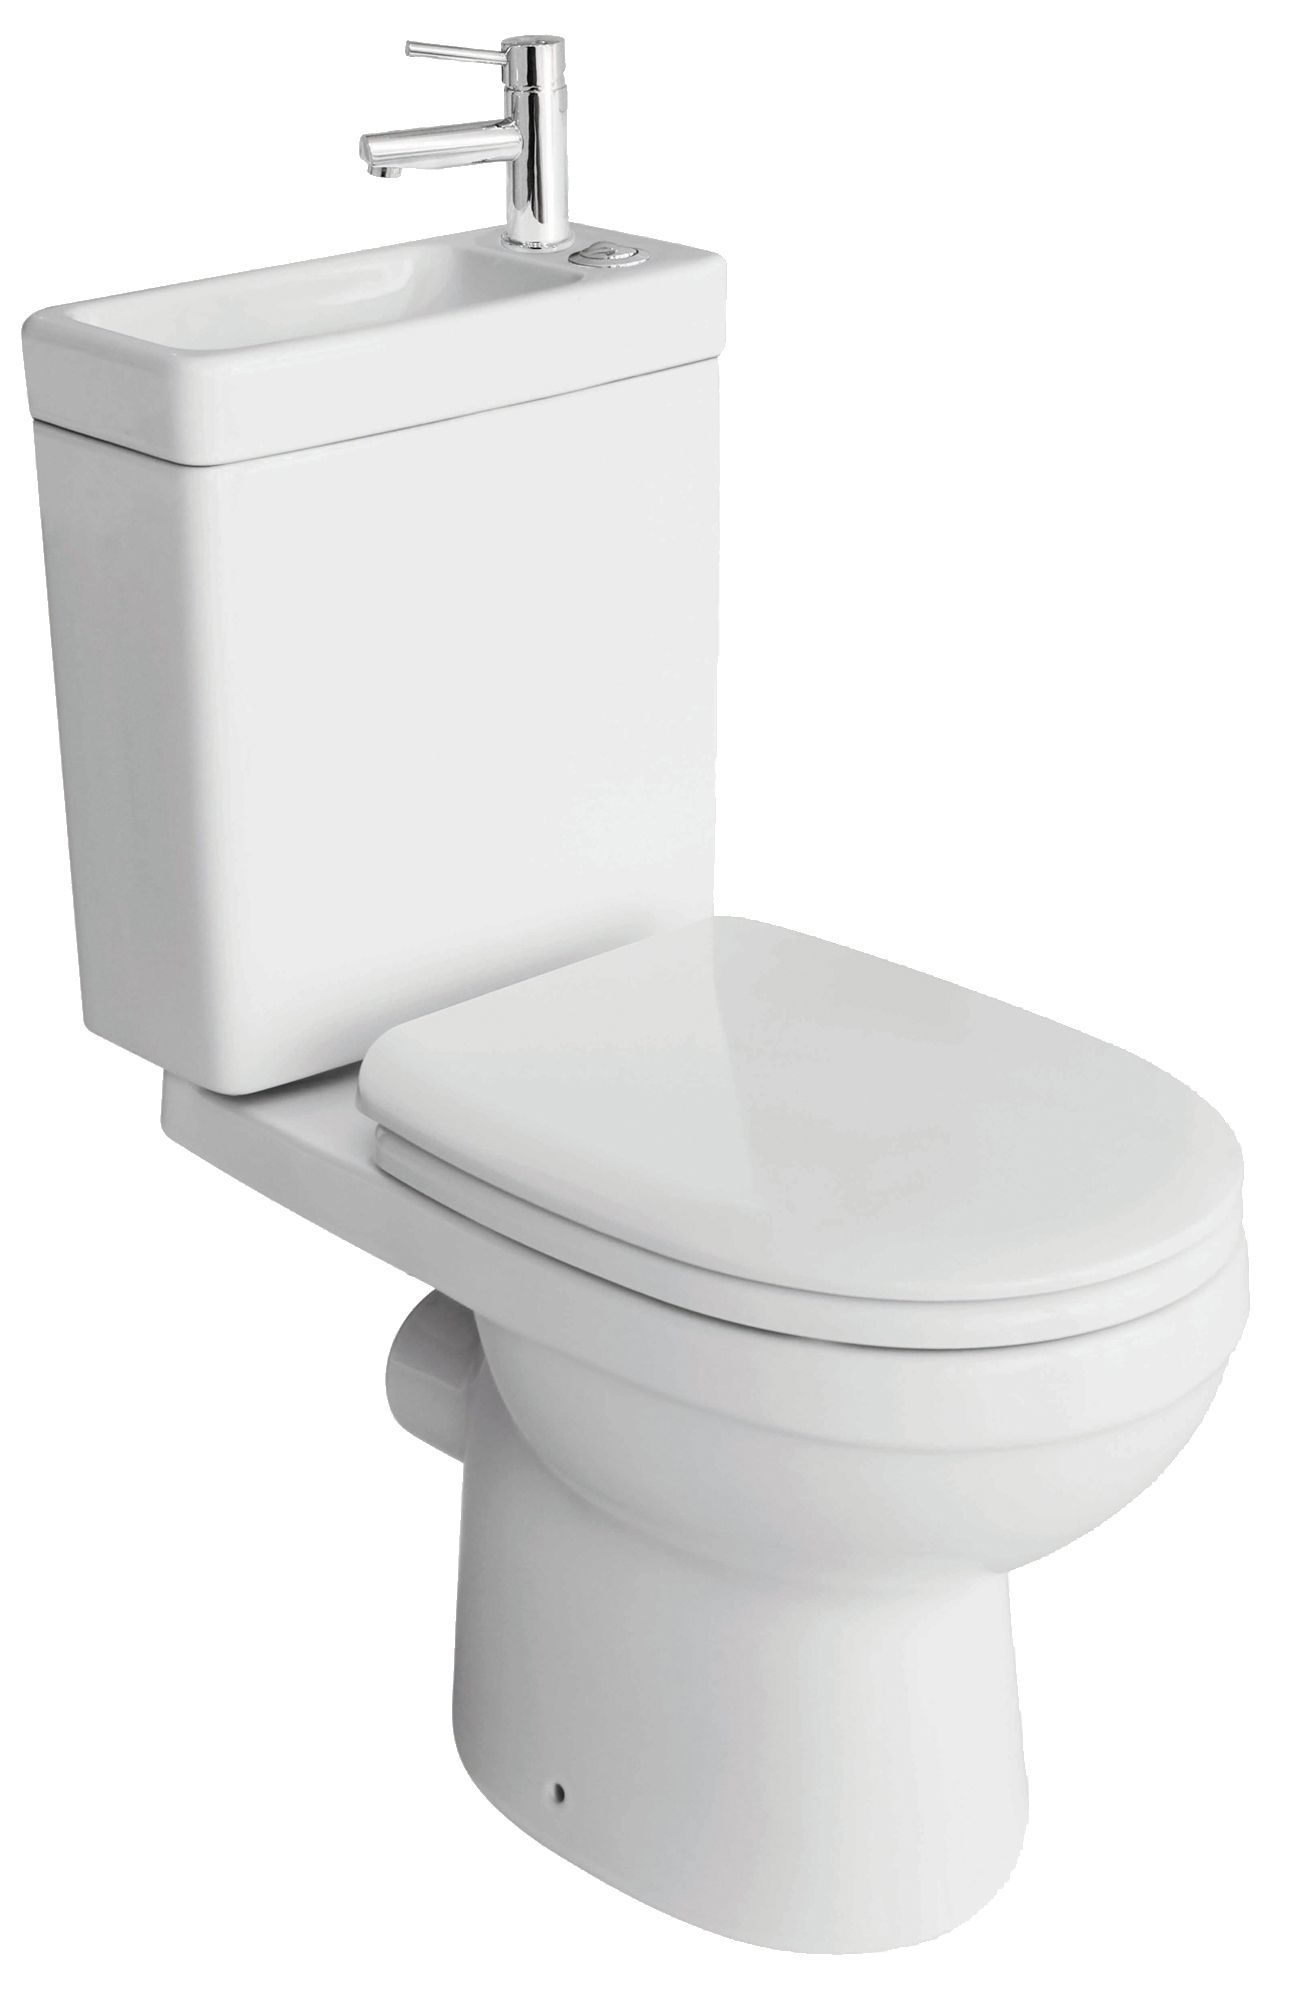 Cooke amp Lewis Duetto Close Coupled Toilet With Integrated